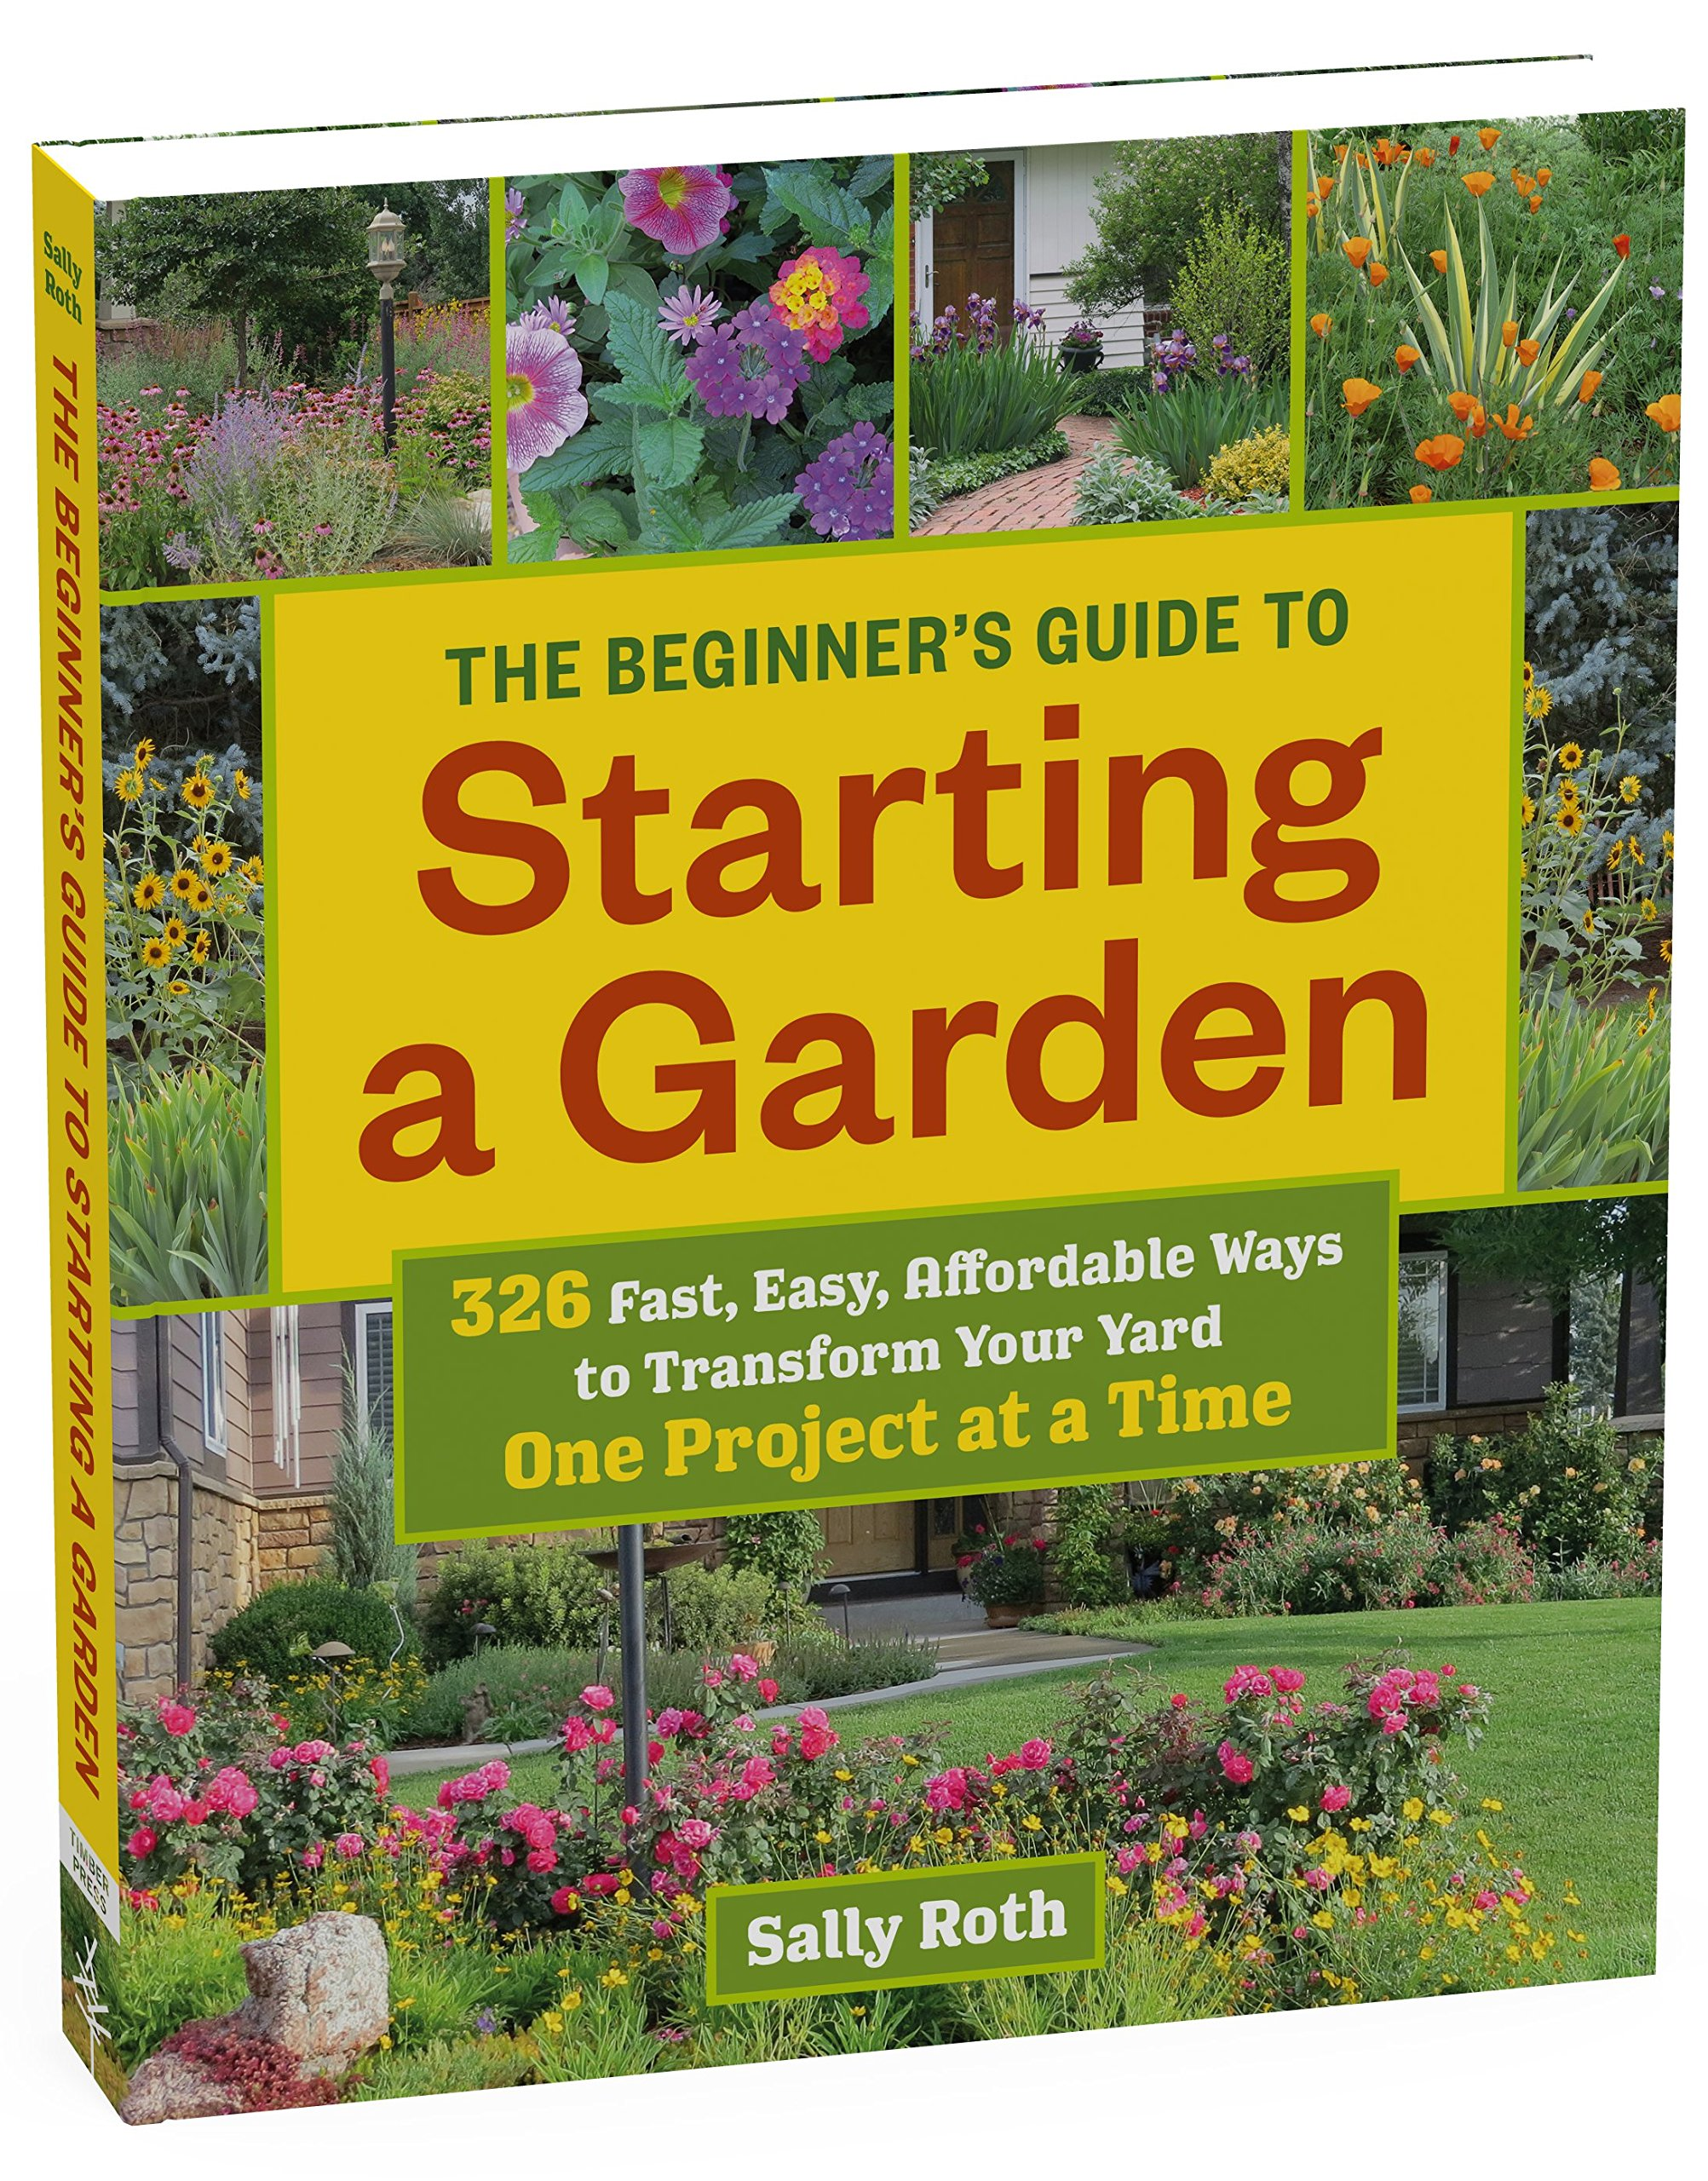 The Beginneru0027s Guide To Starting A Garden: 326 Fast, Easy, Affordable Ways  To Transform Your Yard One Project At A Time: Sally Roth: 9781604696745: ...